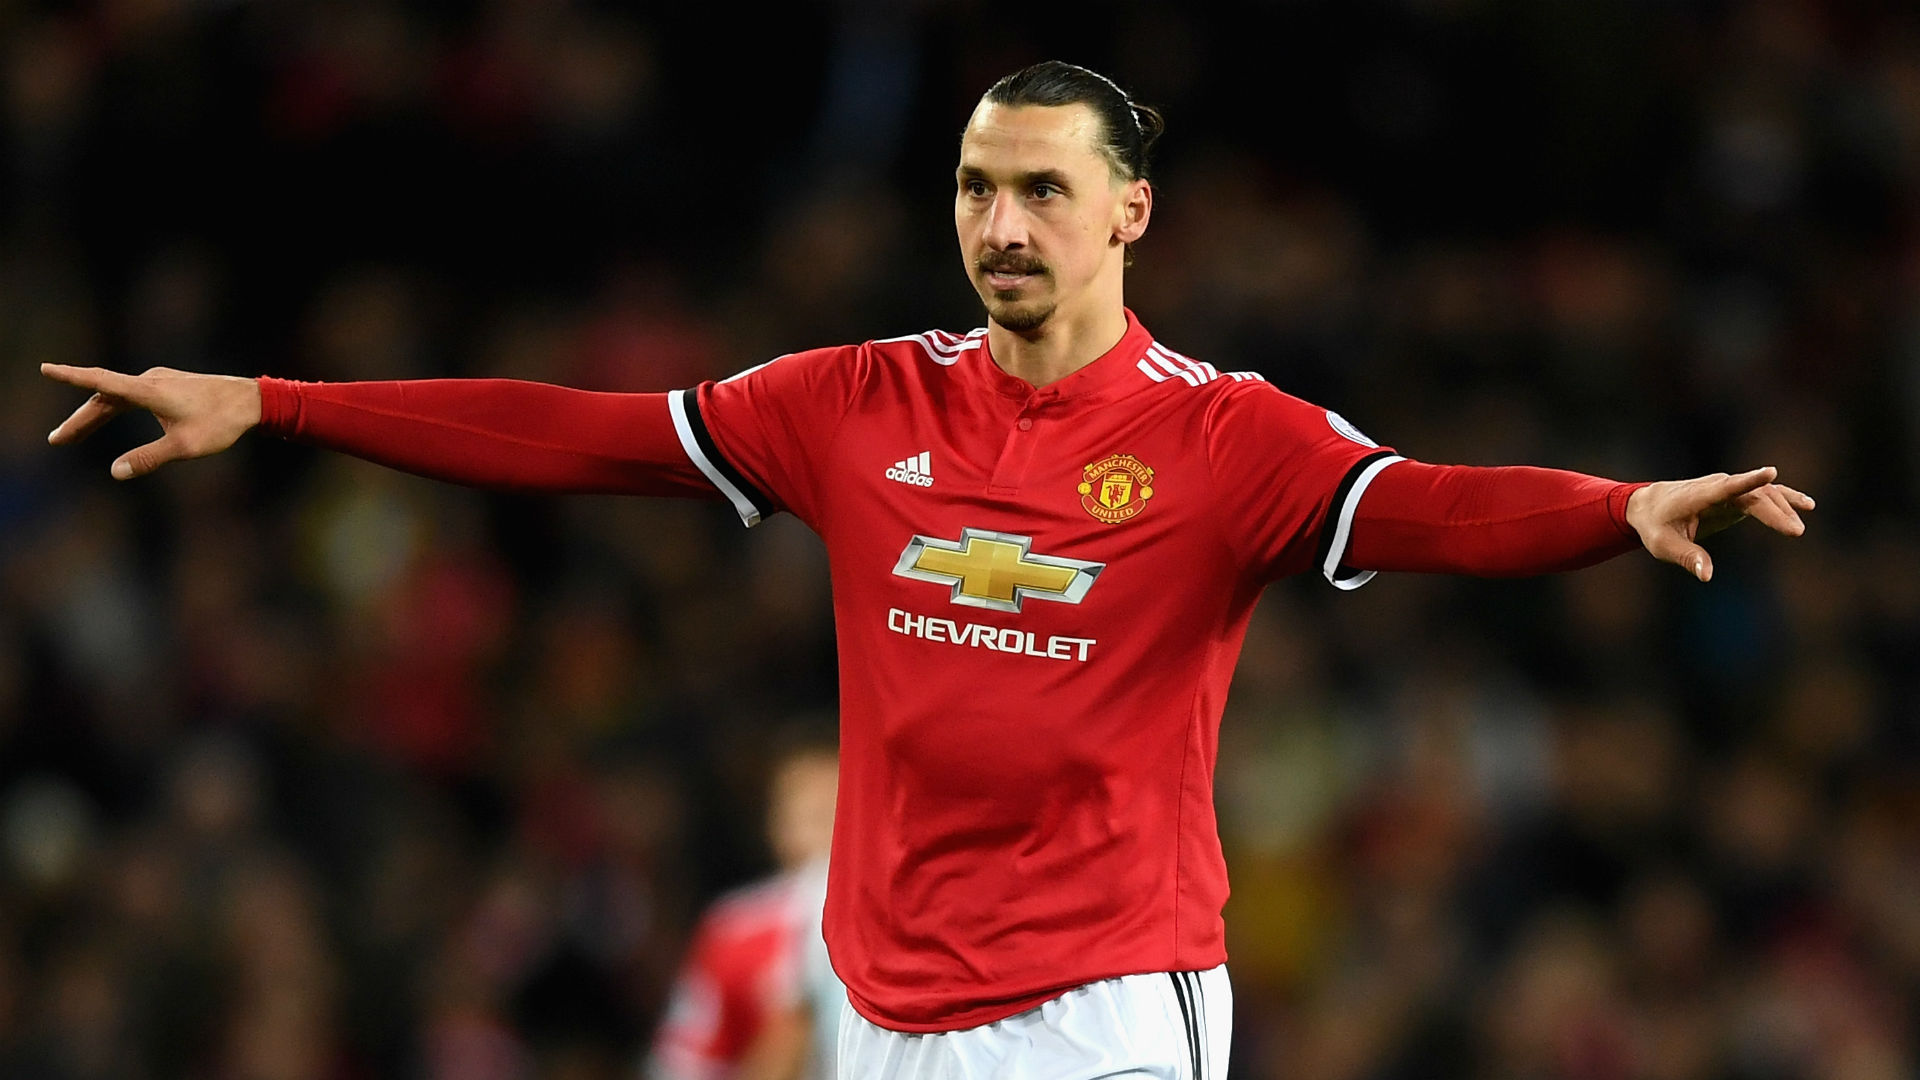 Zlatan Ibrahimovic reaches agreement to join MLS side LA Galaxy in March